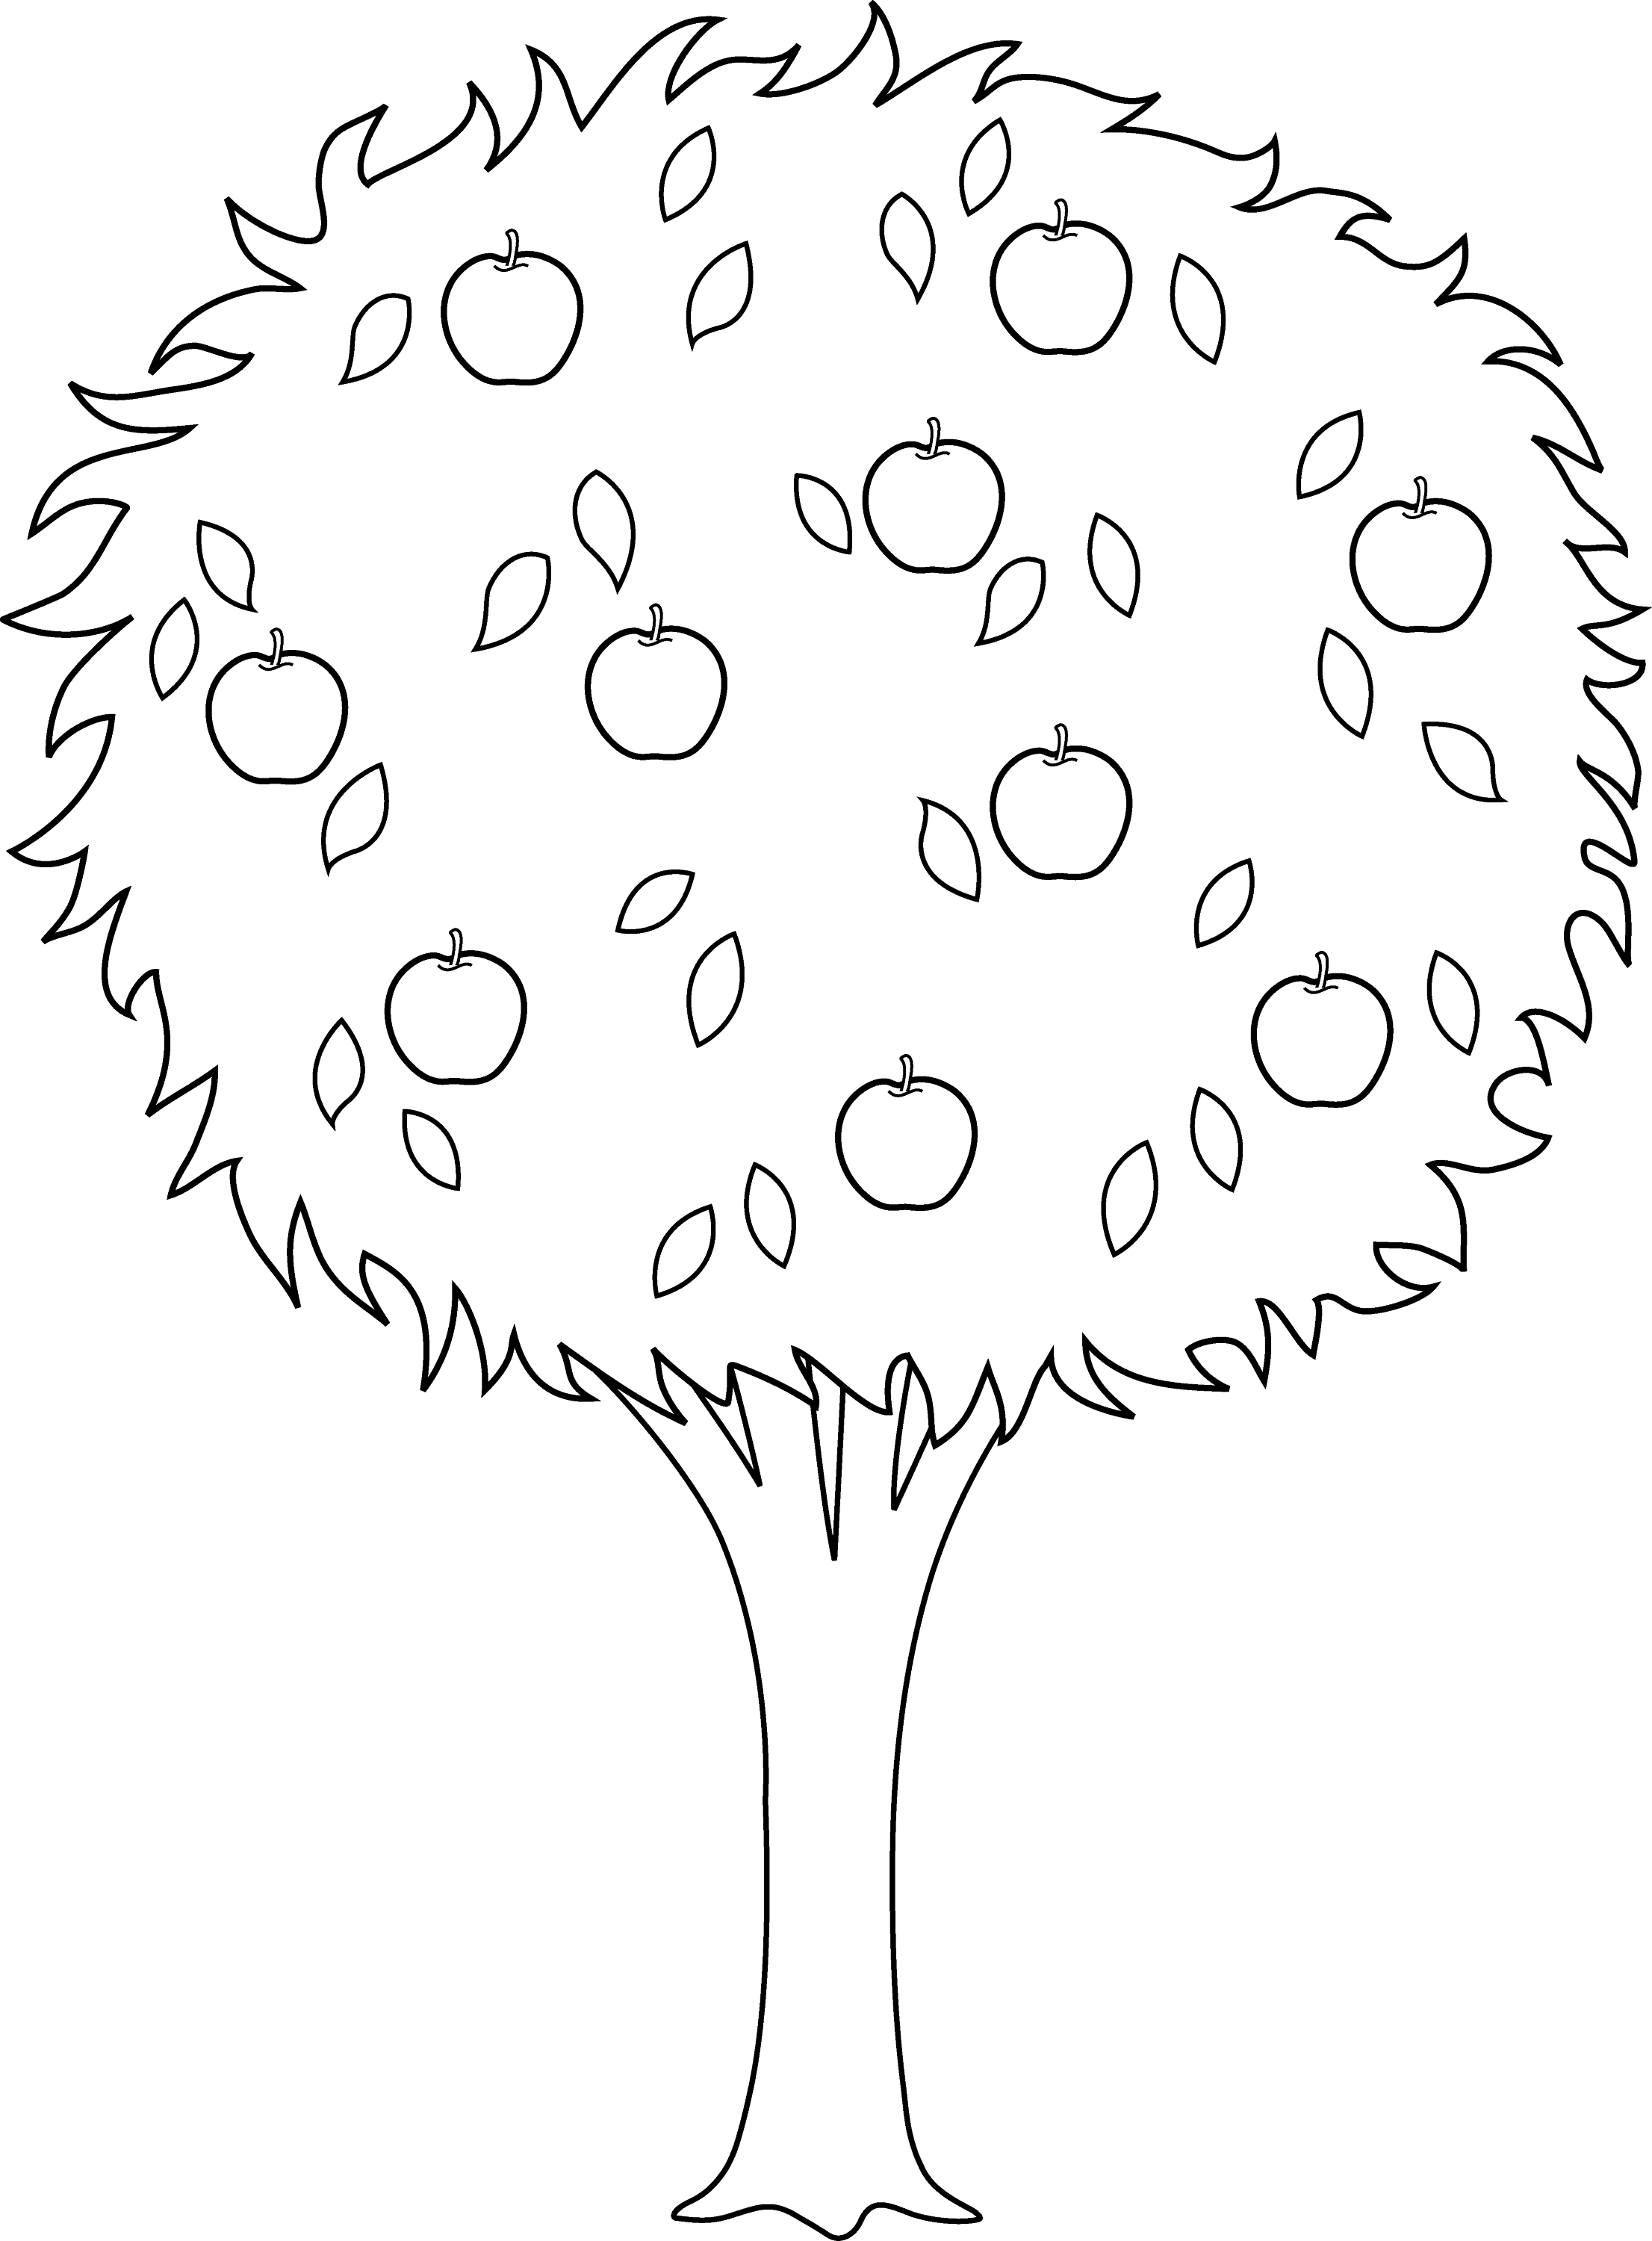 coloring page of apple tree colorable apple tree outline free clip art coloring tree apple page of